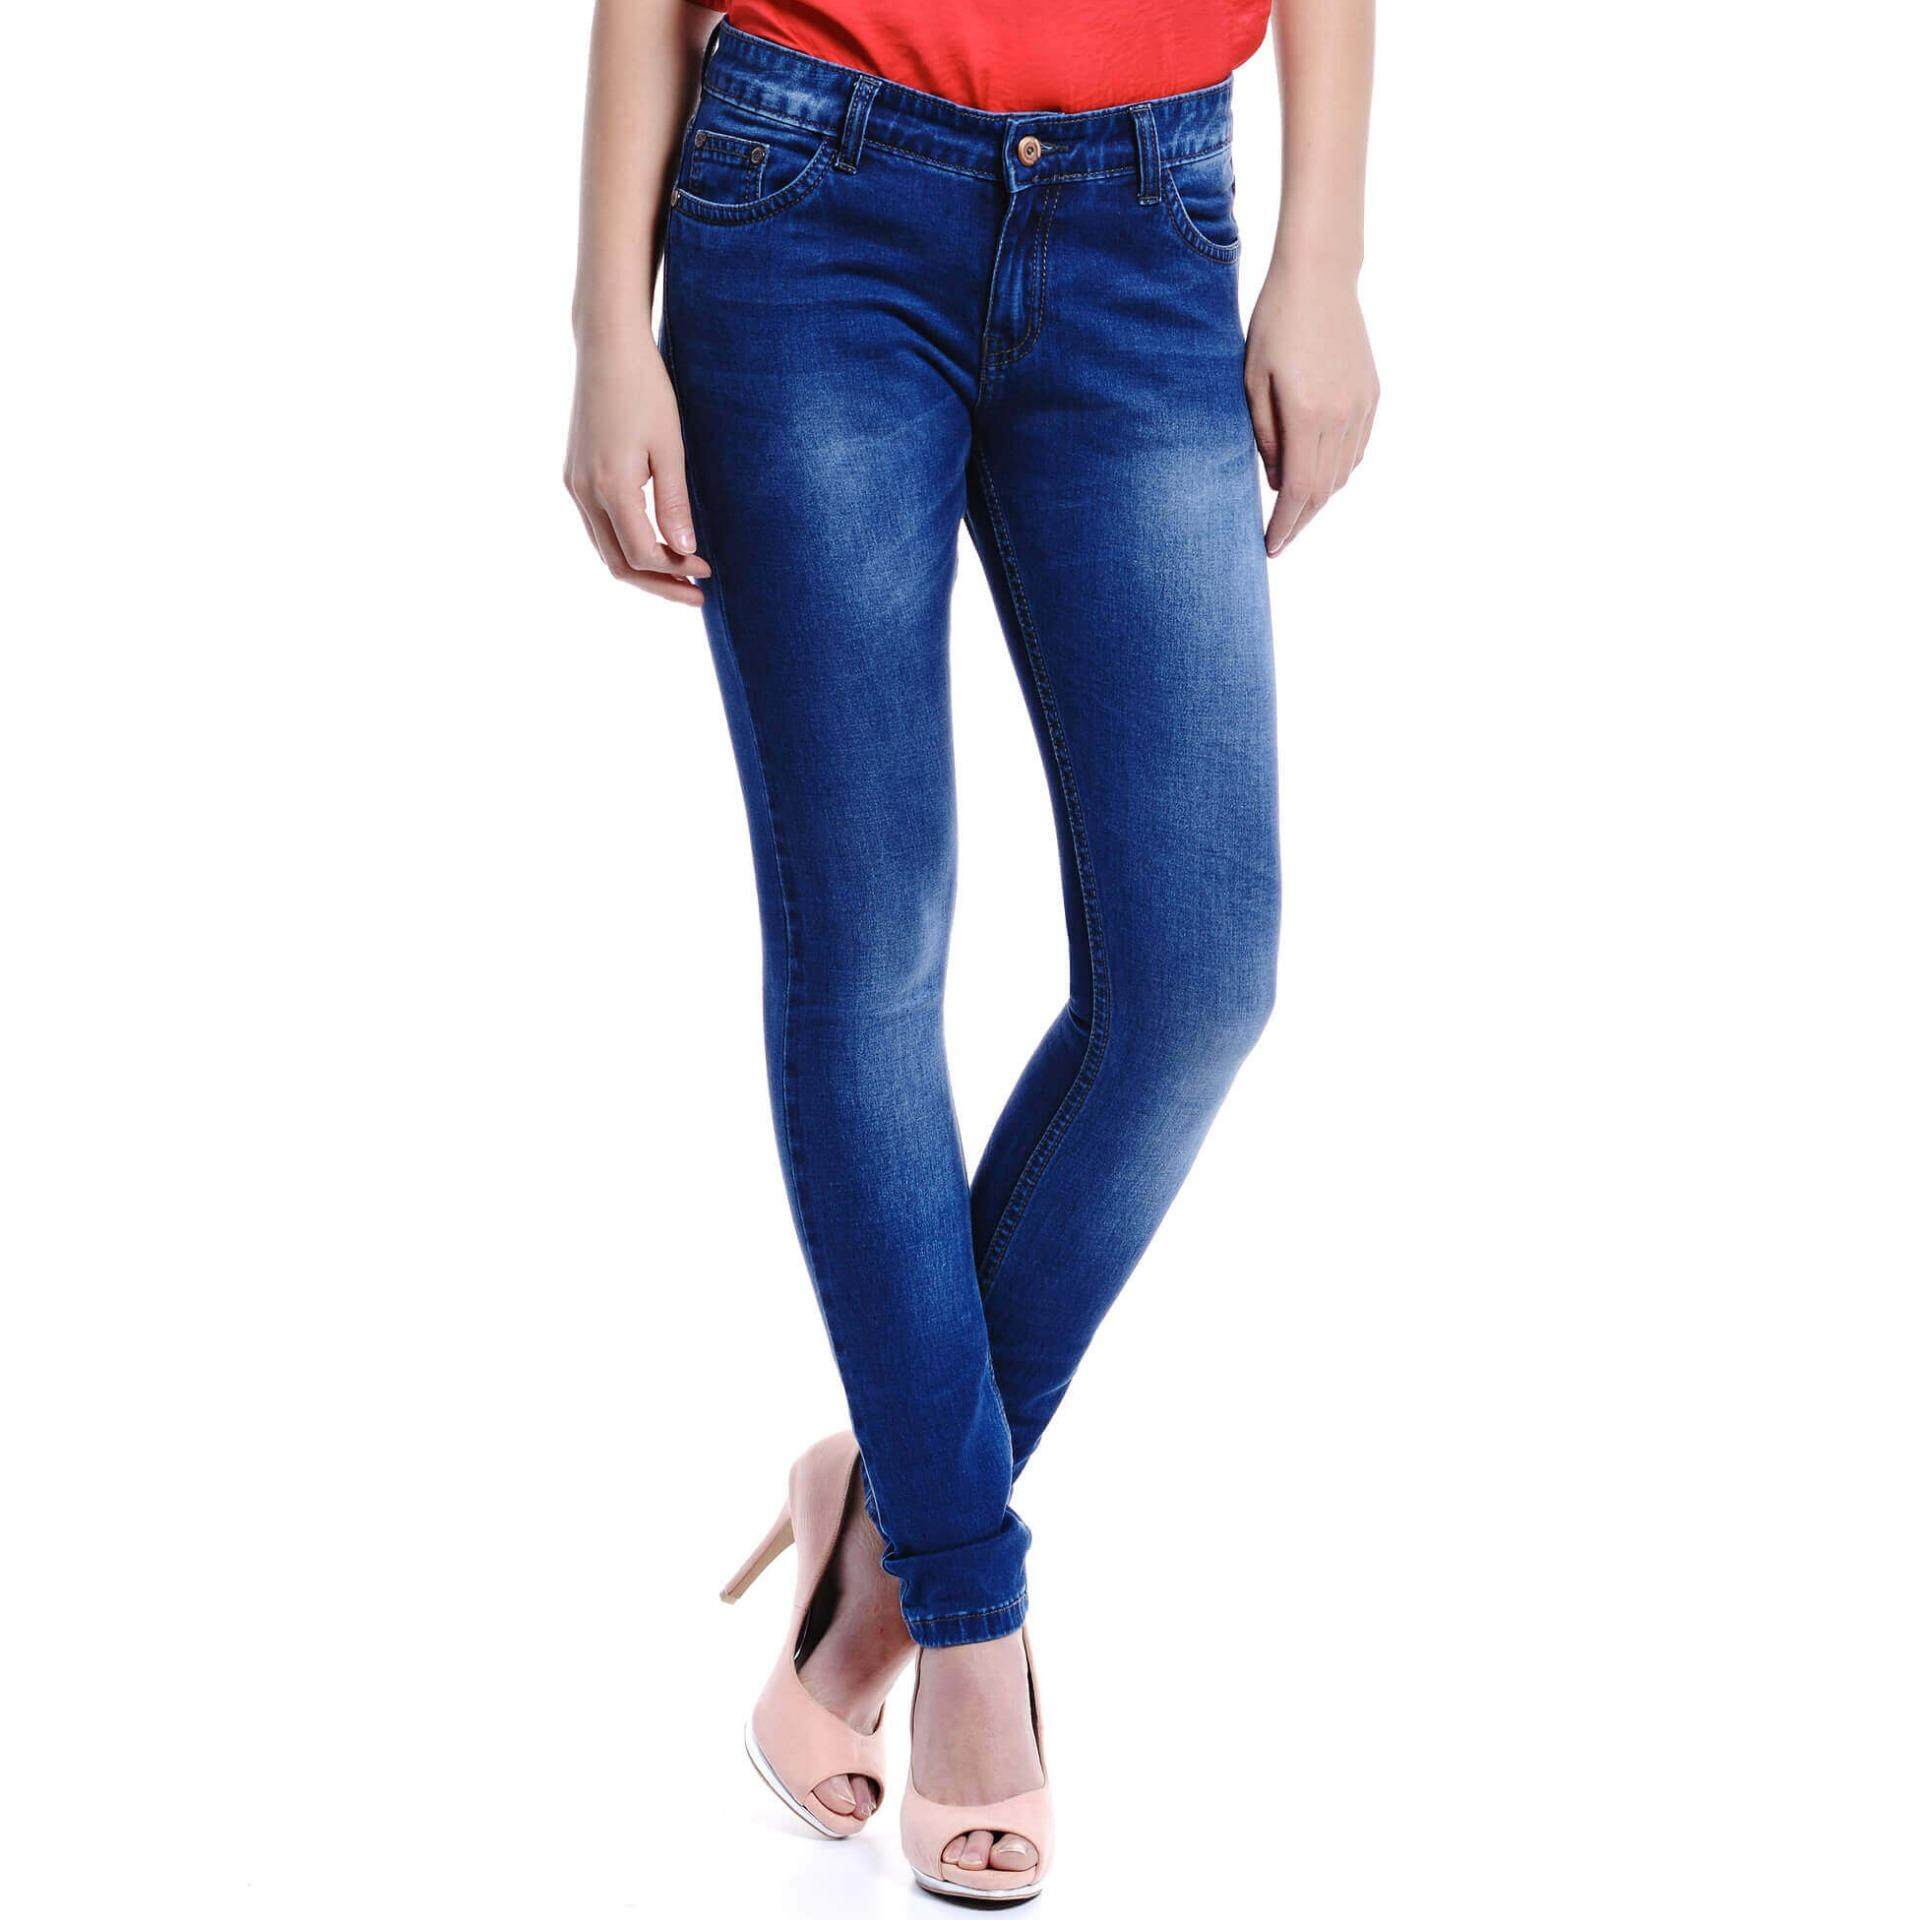 Jazz &Co Women Mid Rise Skinny Jeans (Indigo)